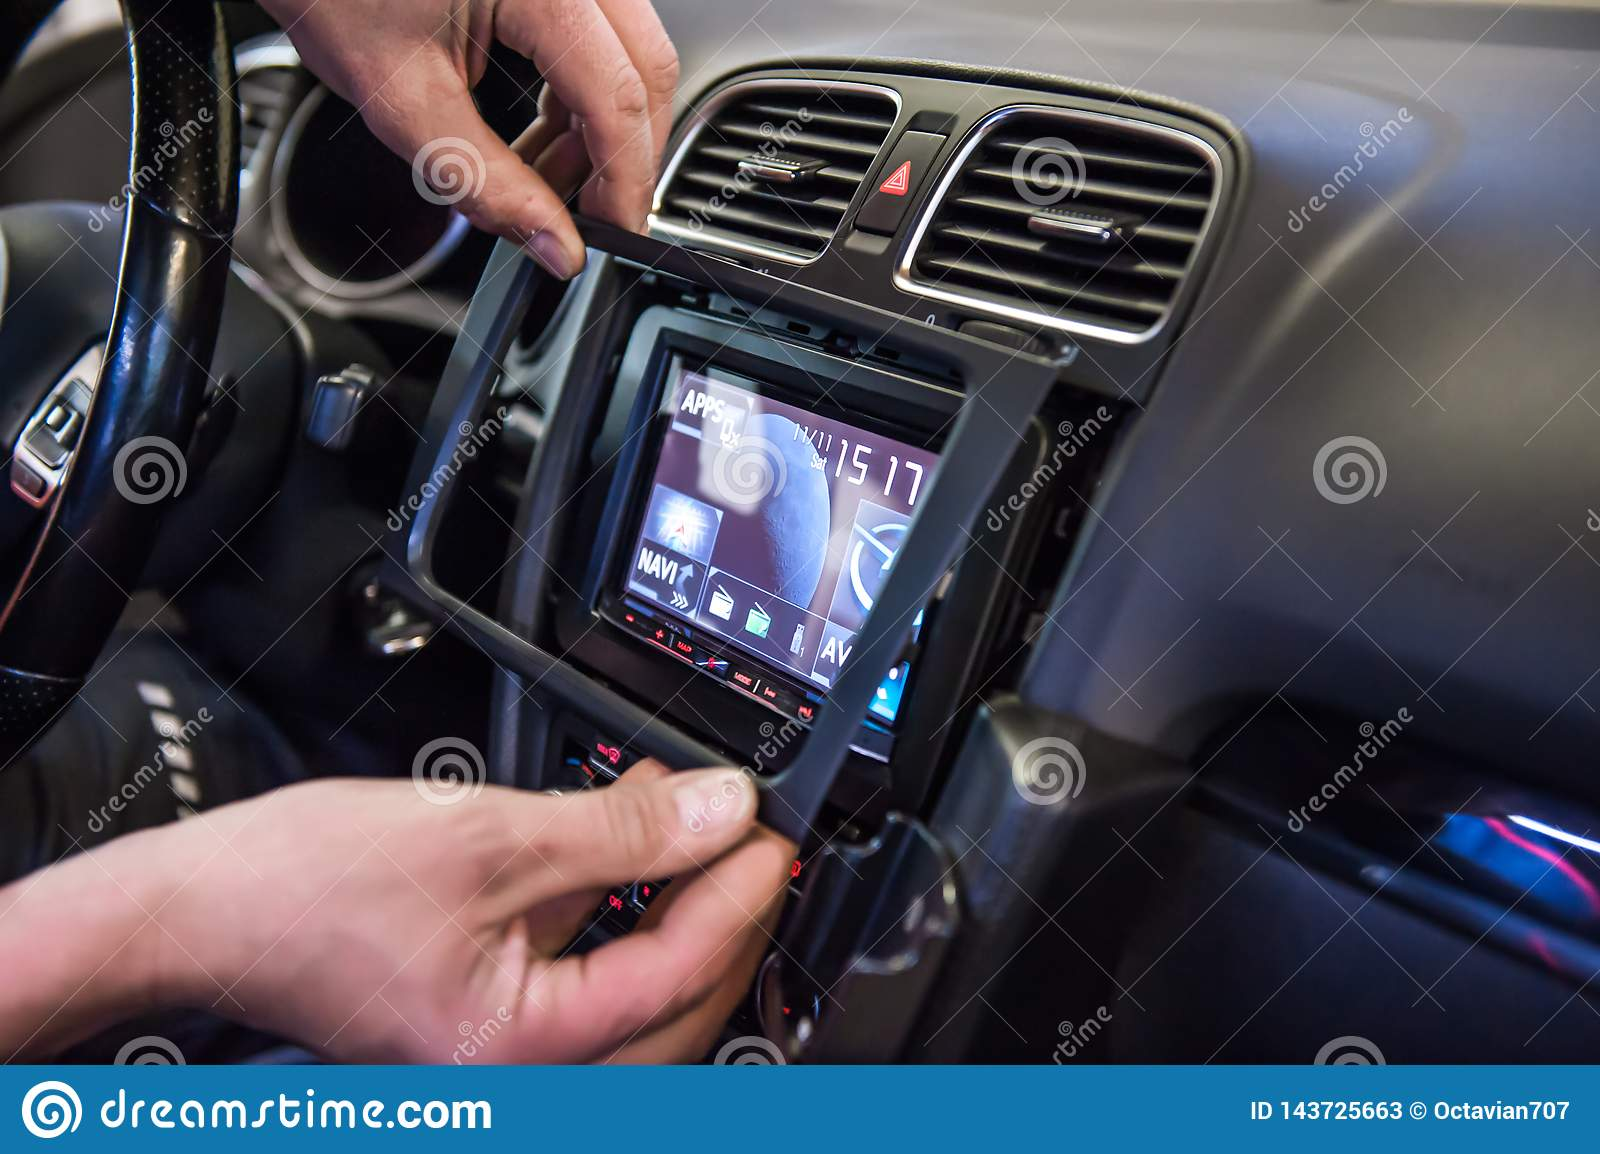 Hands mounting frame on touch display in car